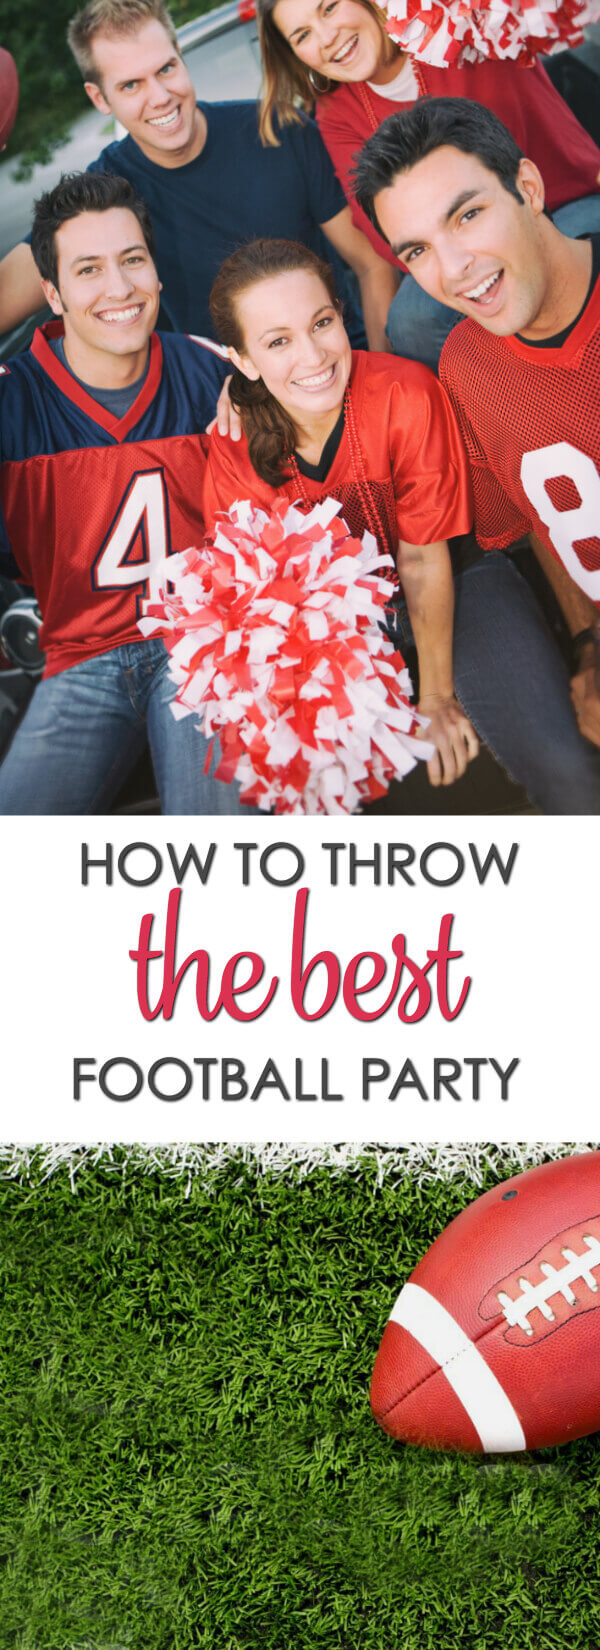 How to throw the best football party - everything you need for tailgating or a Super Bowl party